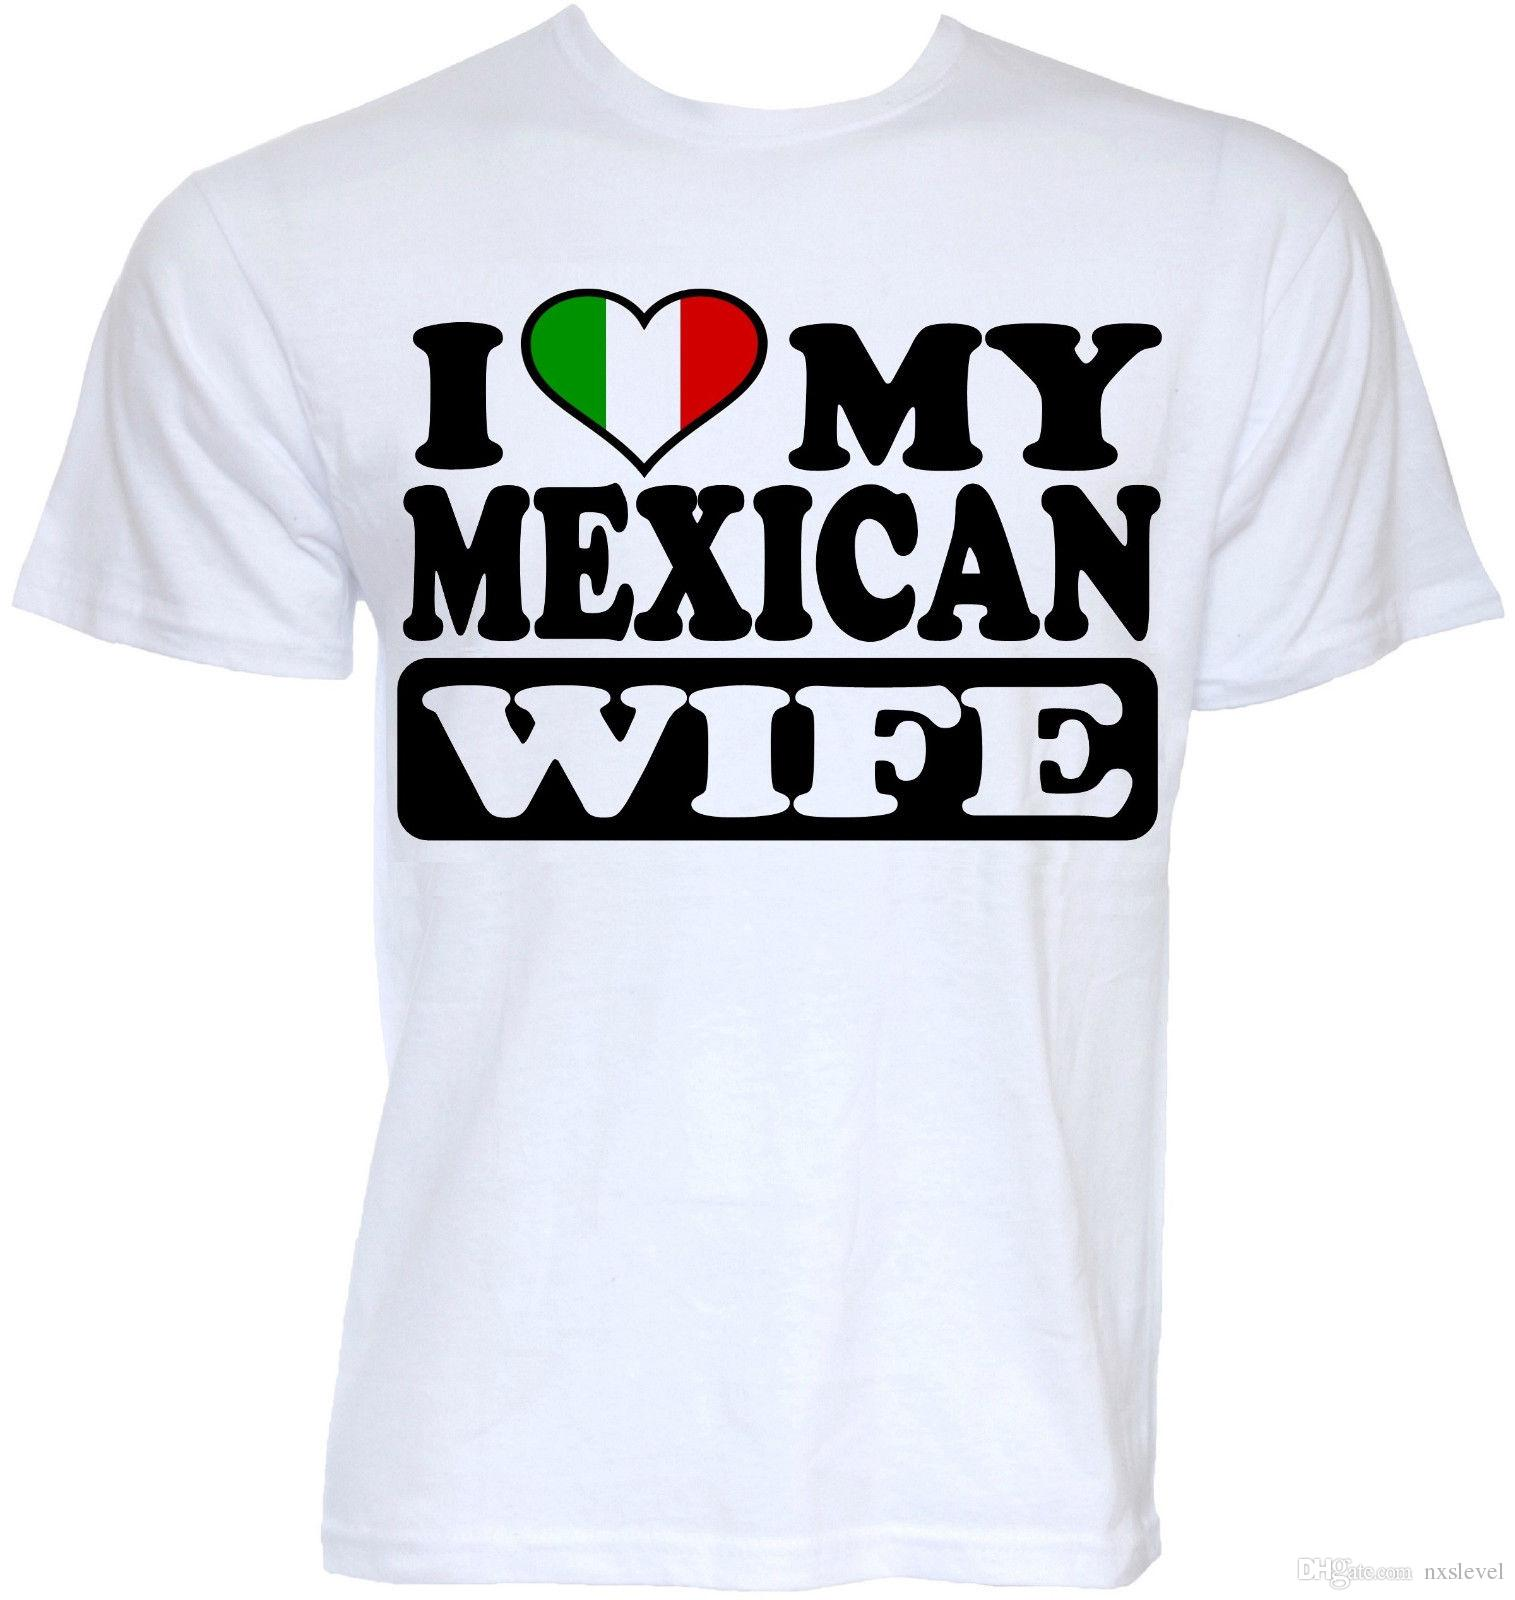 d3ffd008 FUNNY MEXICAN MEXICO T SHIRTS GIFTS MENS COOL NOVELTY JOKE WIFE FLAG T SHIRT  Best T Shirt Online Buy Funky T Shirts Online From Nxslevel, $10.21|  DHgate.Com